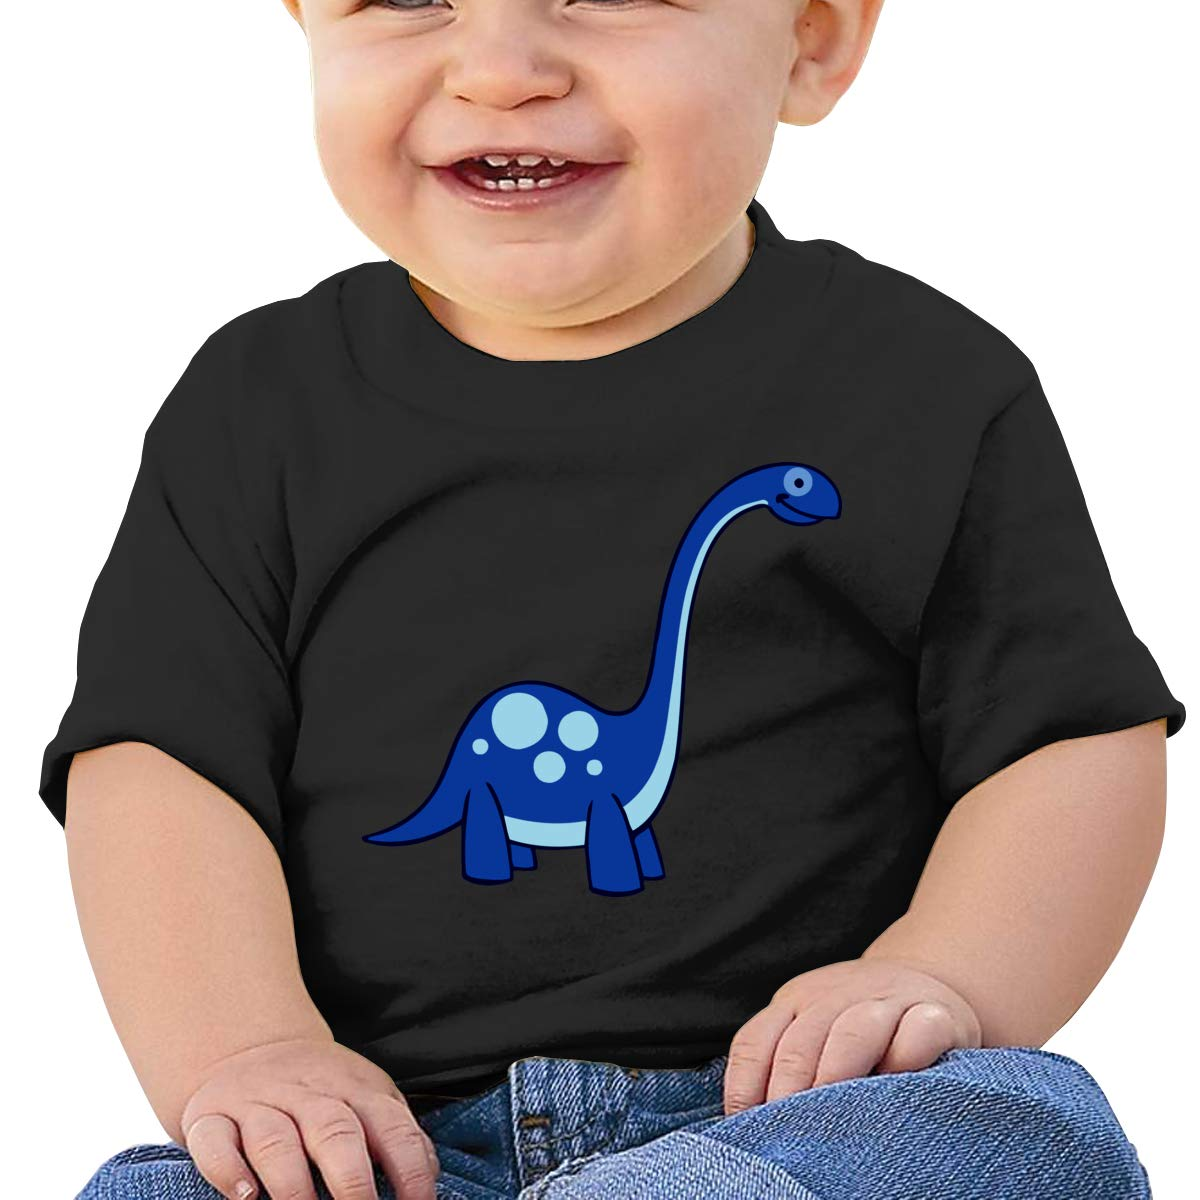 JVNSS Blue Dinosaur Baby T-Shirt Infant Boy Girl Cotton T Shirts Fashion Tee Shirts for 6M-2T Baby